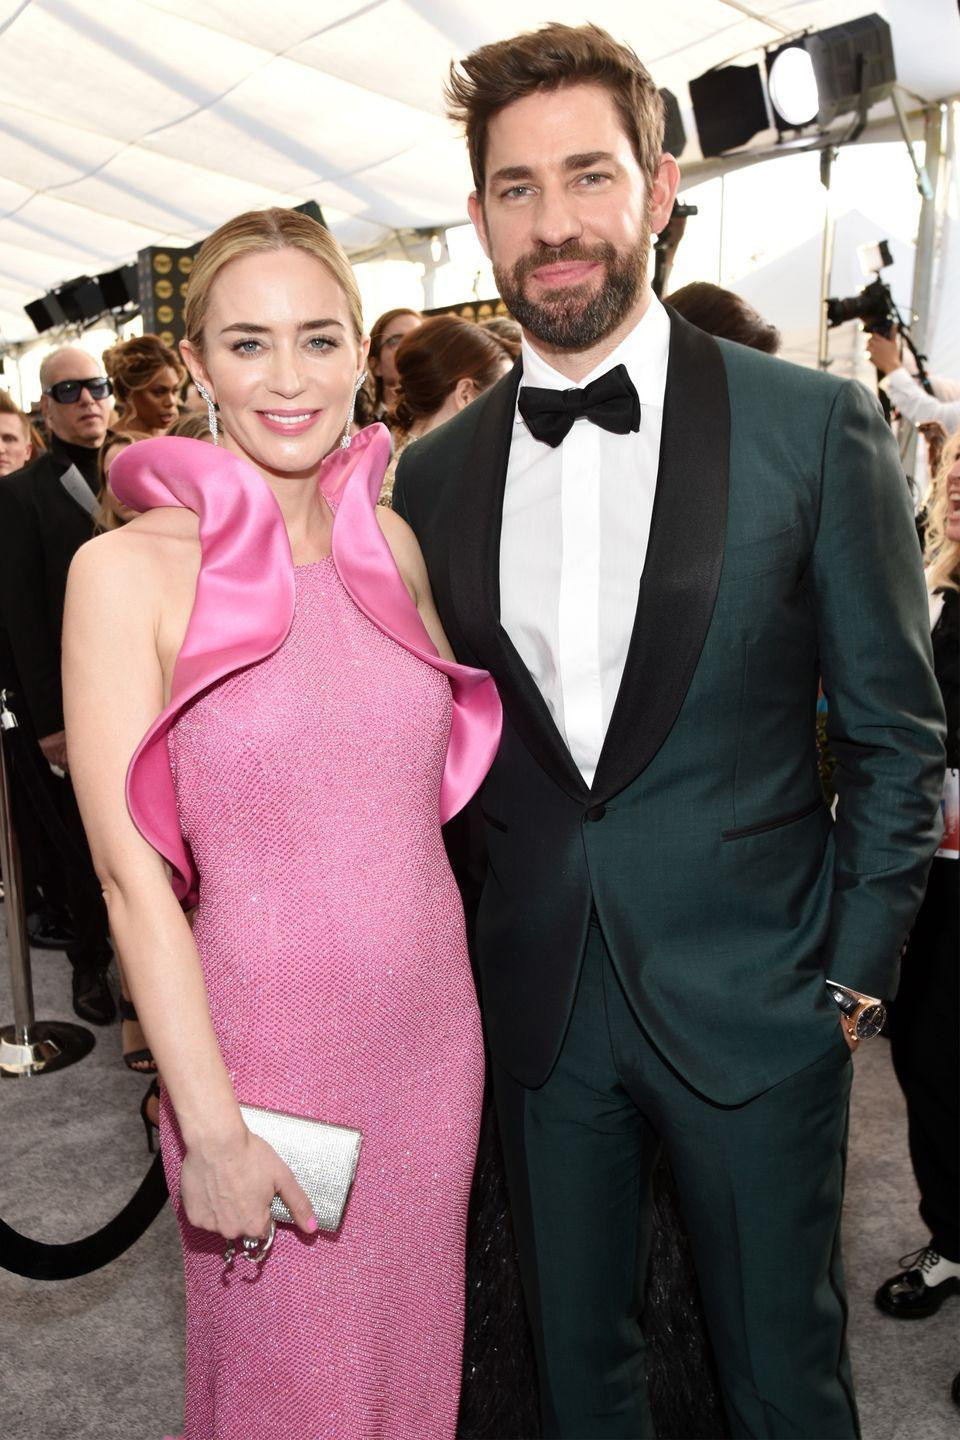 "<p>John Krasinski knew Emily Blunt would be his future wife when they initially met. ""Then I met her and I was so nervous. I was like, 'Oh God, I think I'm going to fall in love with her.' As I shook her hand I went, 'I like you,'"" he <a href=""https://www.youtube.com/watch?v=7iN_5byfPs8"" rel=""nofollow noopener"" target=""_blank"" data-ylk=""slk:recalled on The Ellen Show"" class=""link rapid-noclick-resp"">recalled on <em>The Ellen Show</em></a>.</p><p>The two got engaged within a year of meeting, and had an intimate <a href=""https://www.eonline.com/photos/6467/celebrity-weddings-in-italy/225135"" rel=""nofollow noopener"" target=""_blank"" data-ylk=""slk:wedding ceremony"" class=""link rapid-noclick-resp"">wedding ceremony</a> in 2010 at George Clooney's infamous Lake Como home. They now have two children together, daughters Hazel and Violet. </p>"